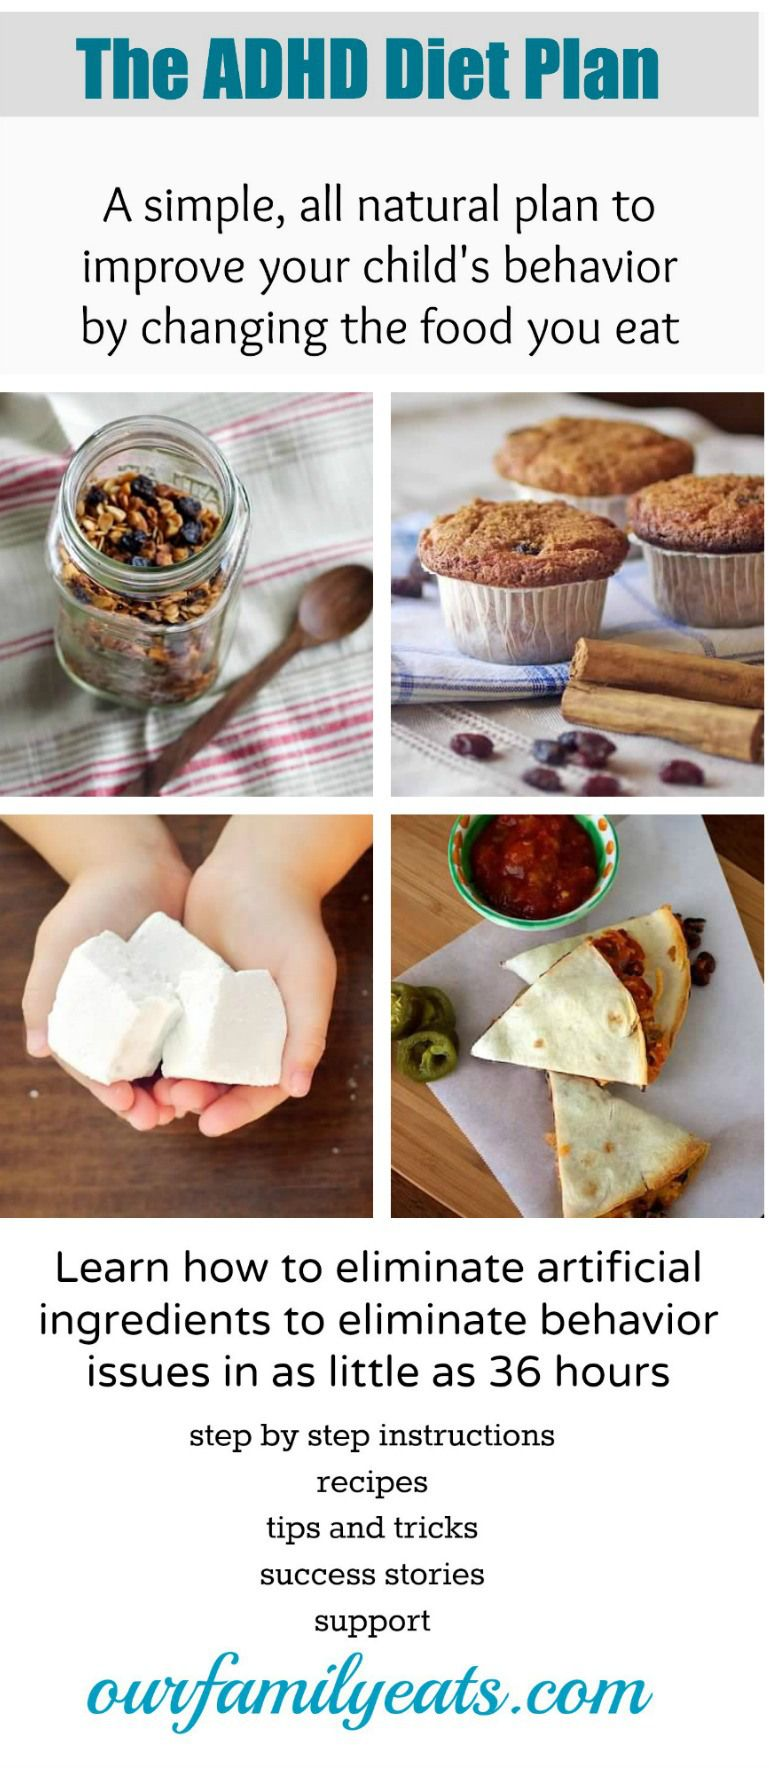 6 Tips For Eating Clean With Kids 6 Tips For Eating Clean With Kids new pics